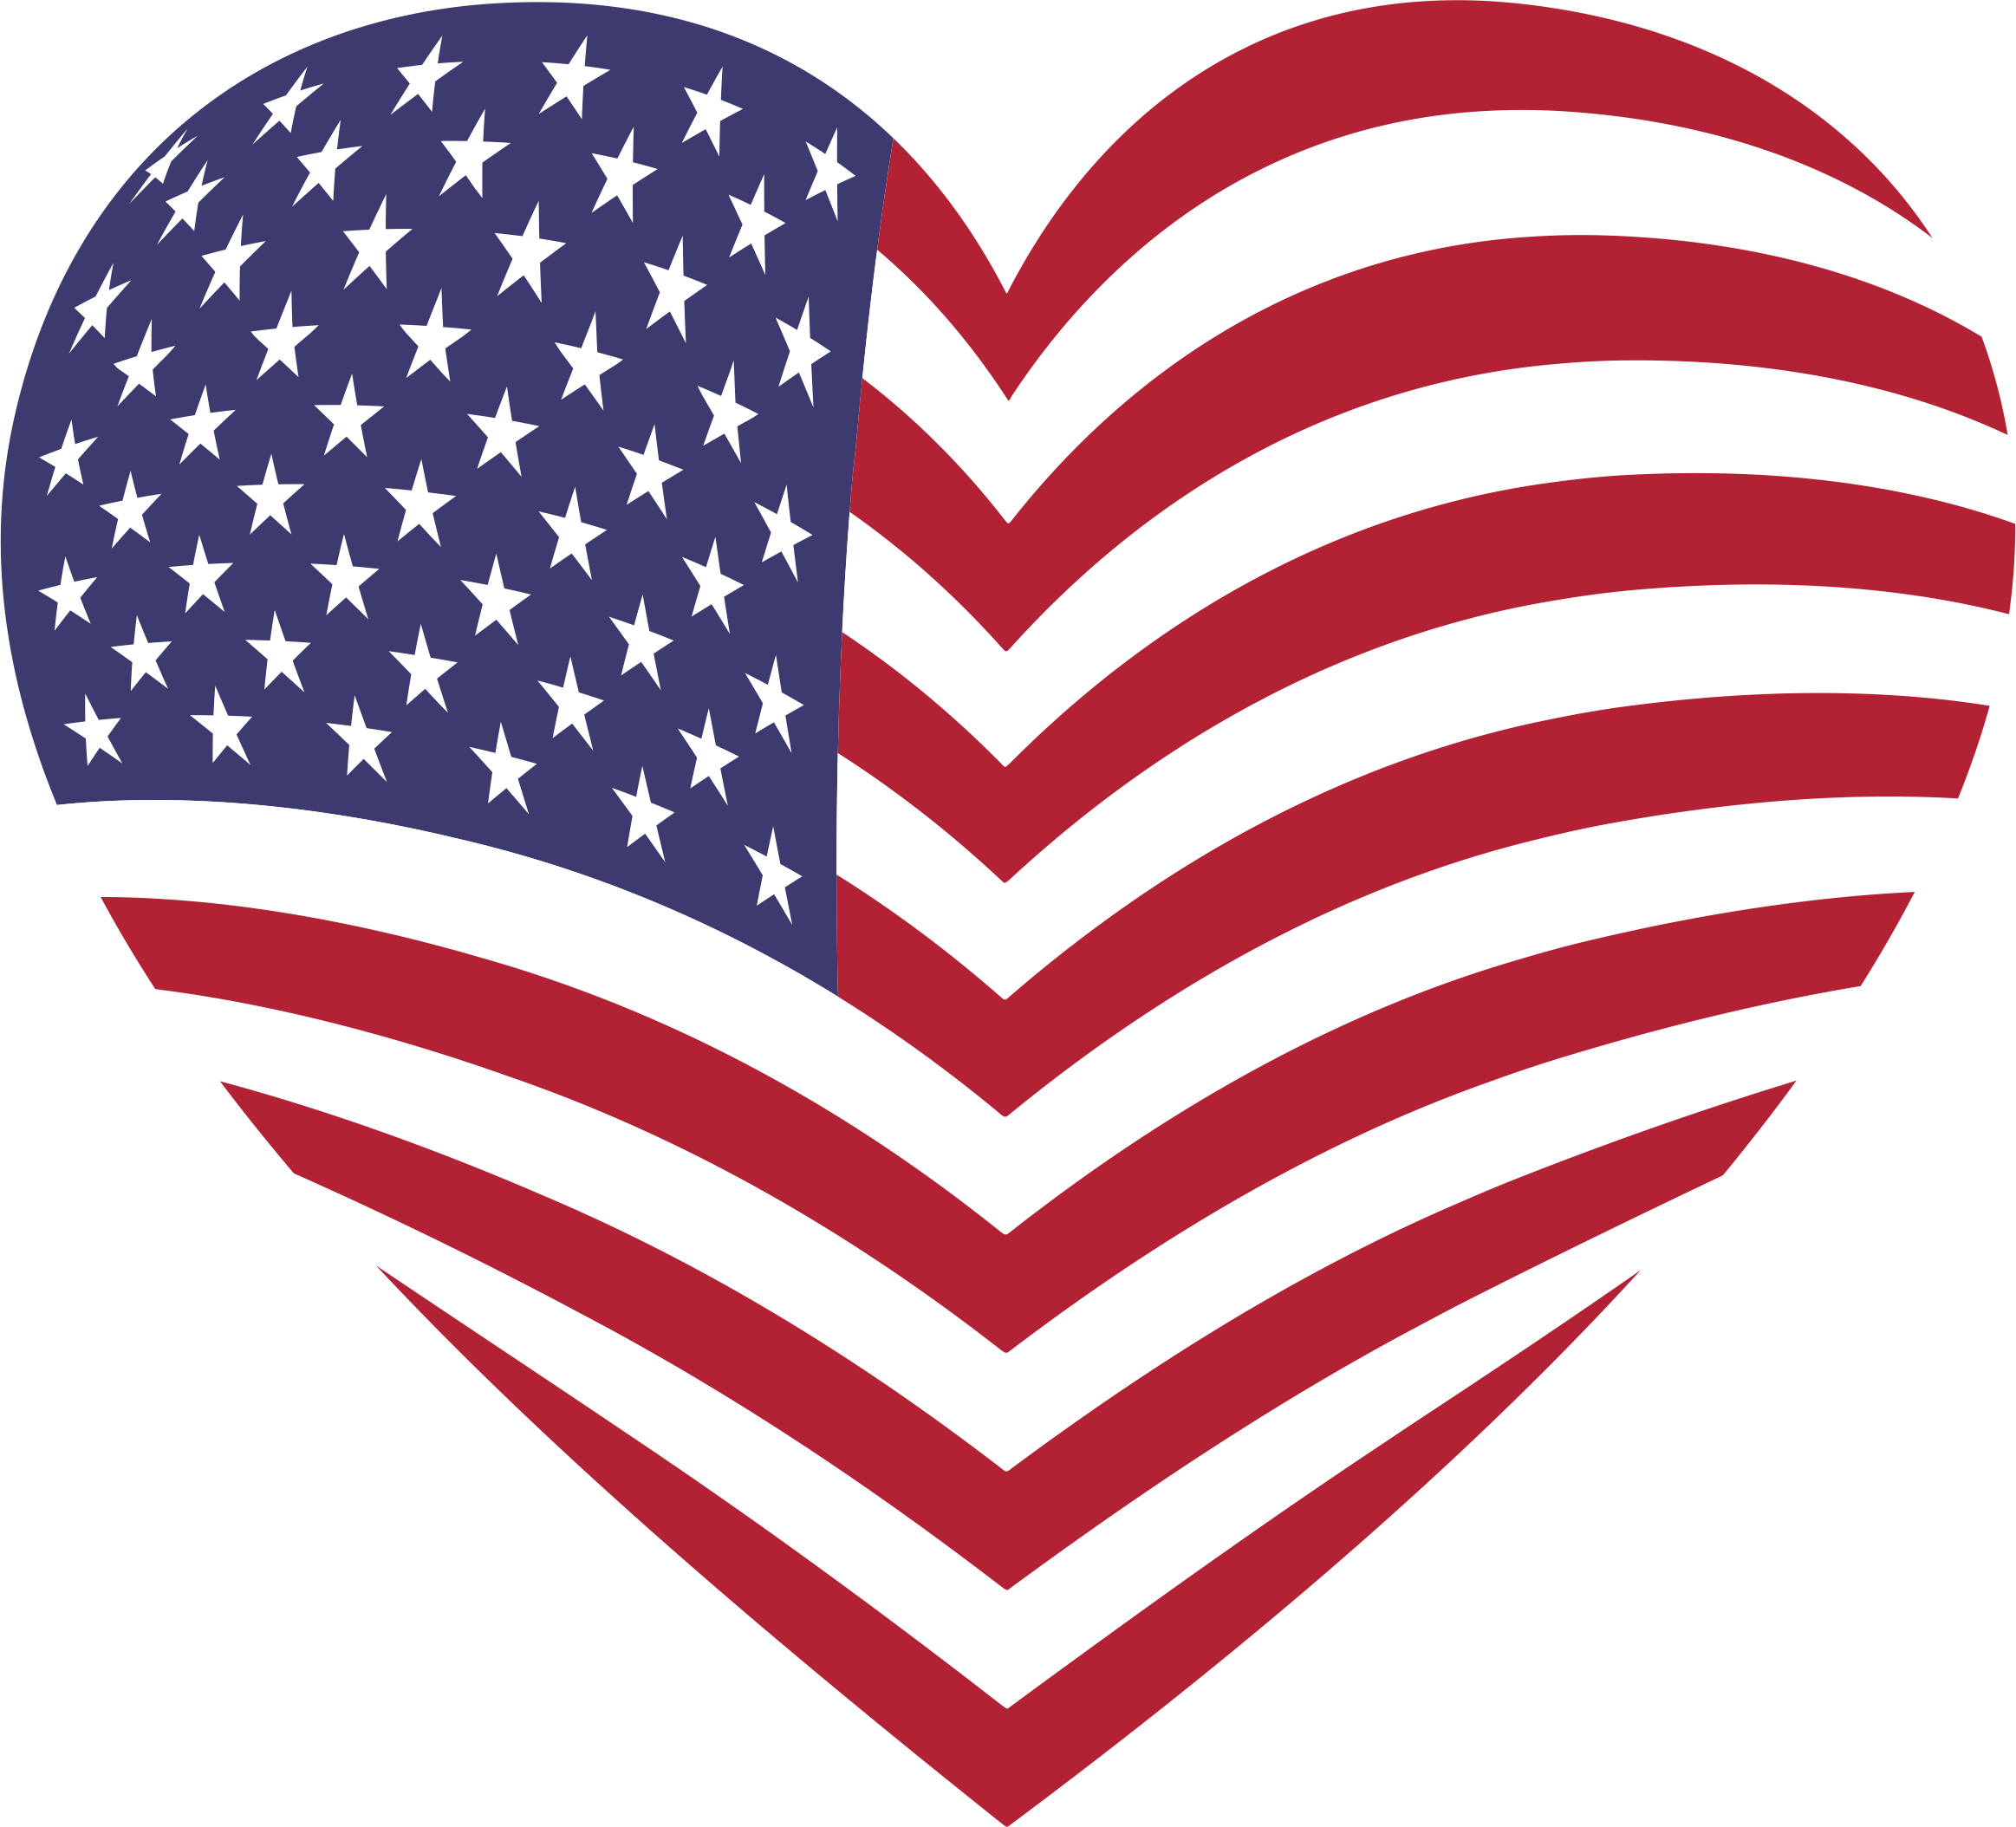 Heart clipart flag, Heart flag Transparent FREE for download.